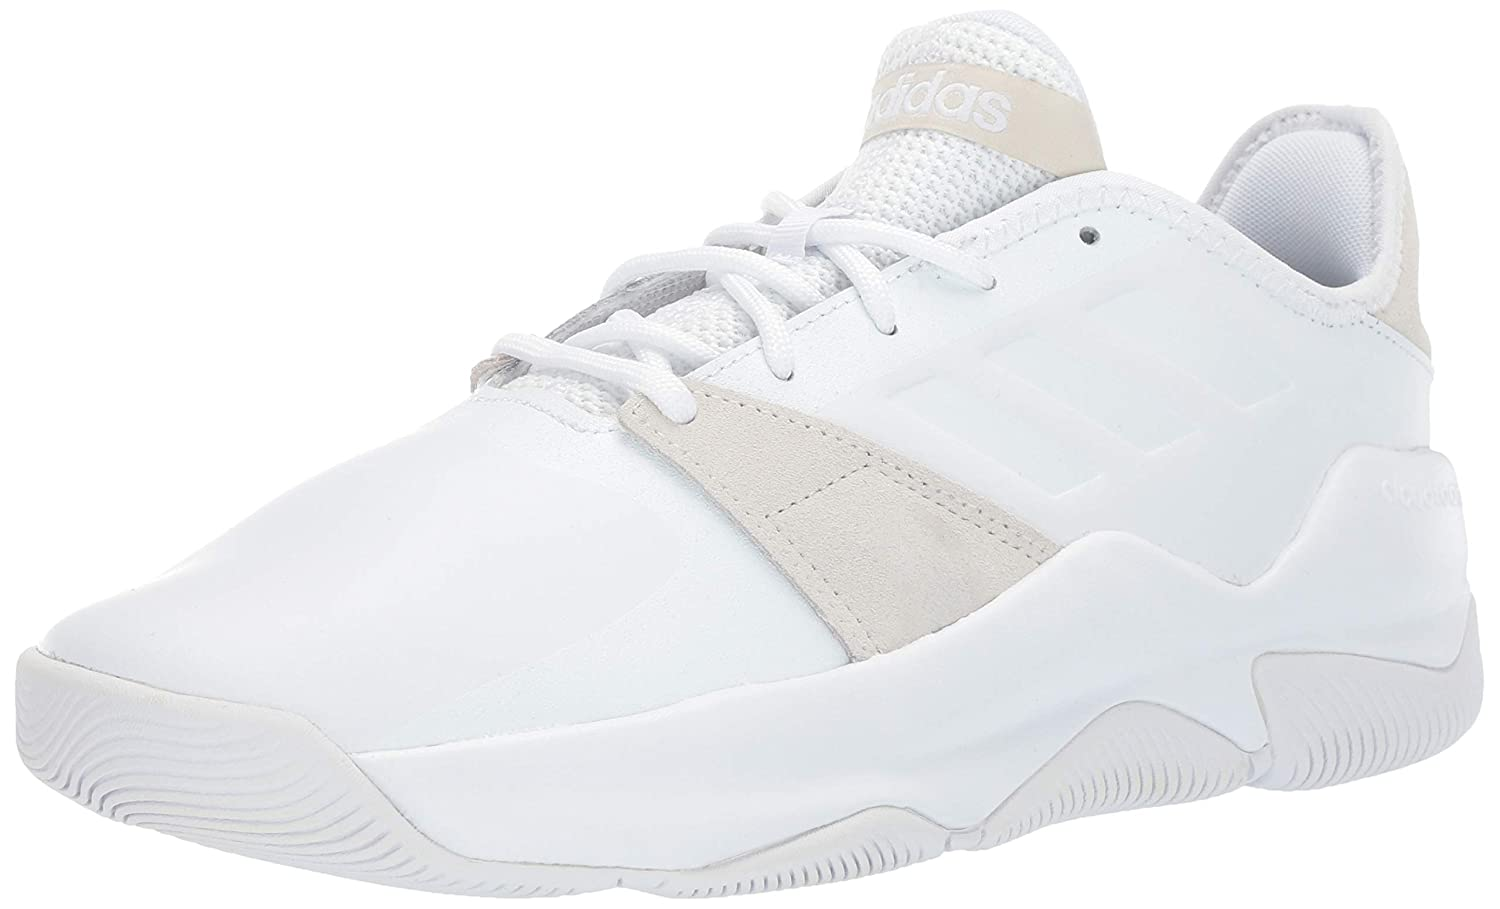 76d868bec87 Adidas Men's Streetflow: Amazon.ca: Shoes & Handbags